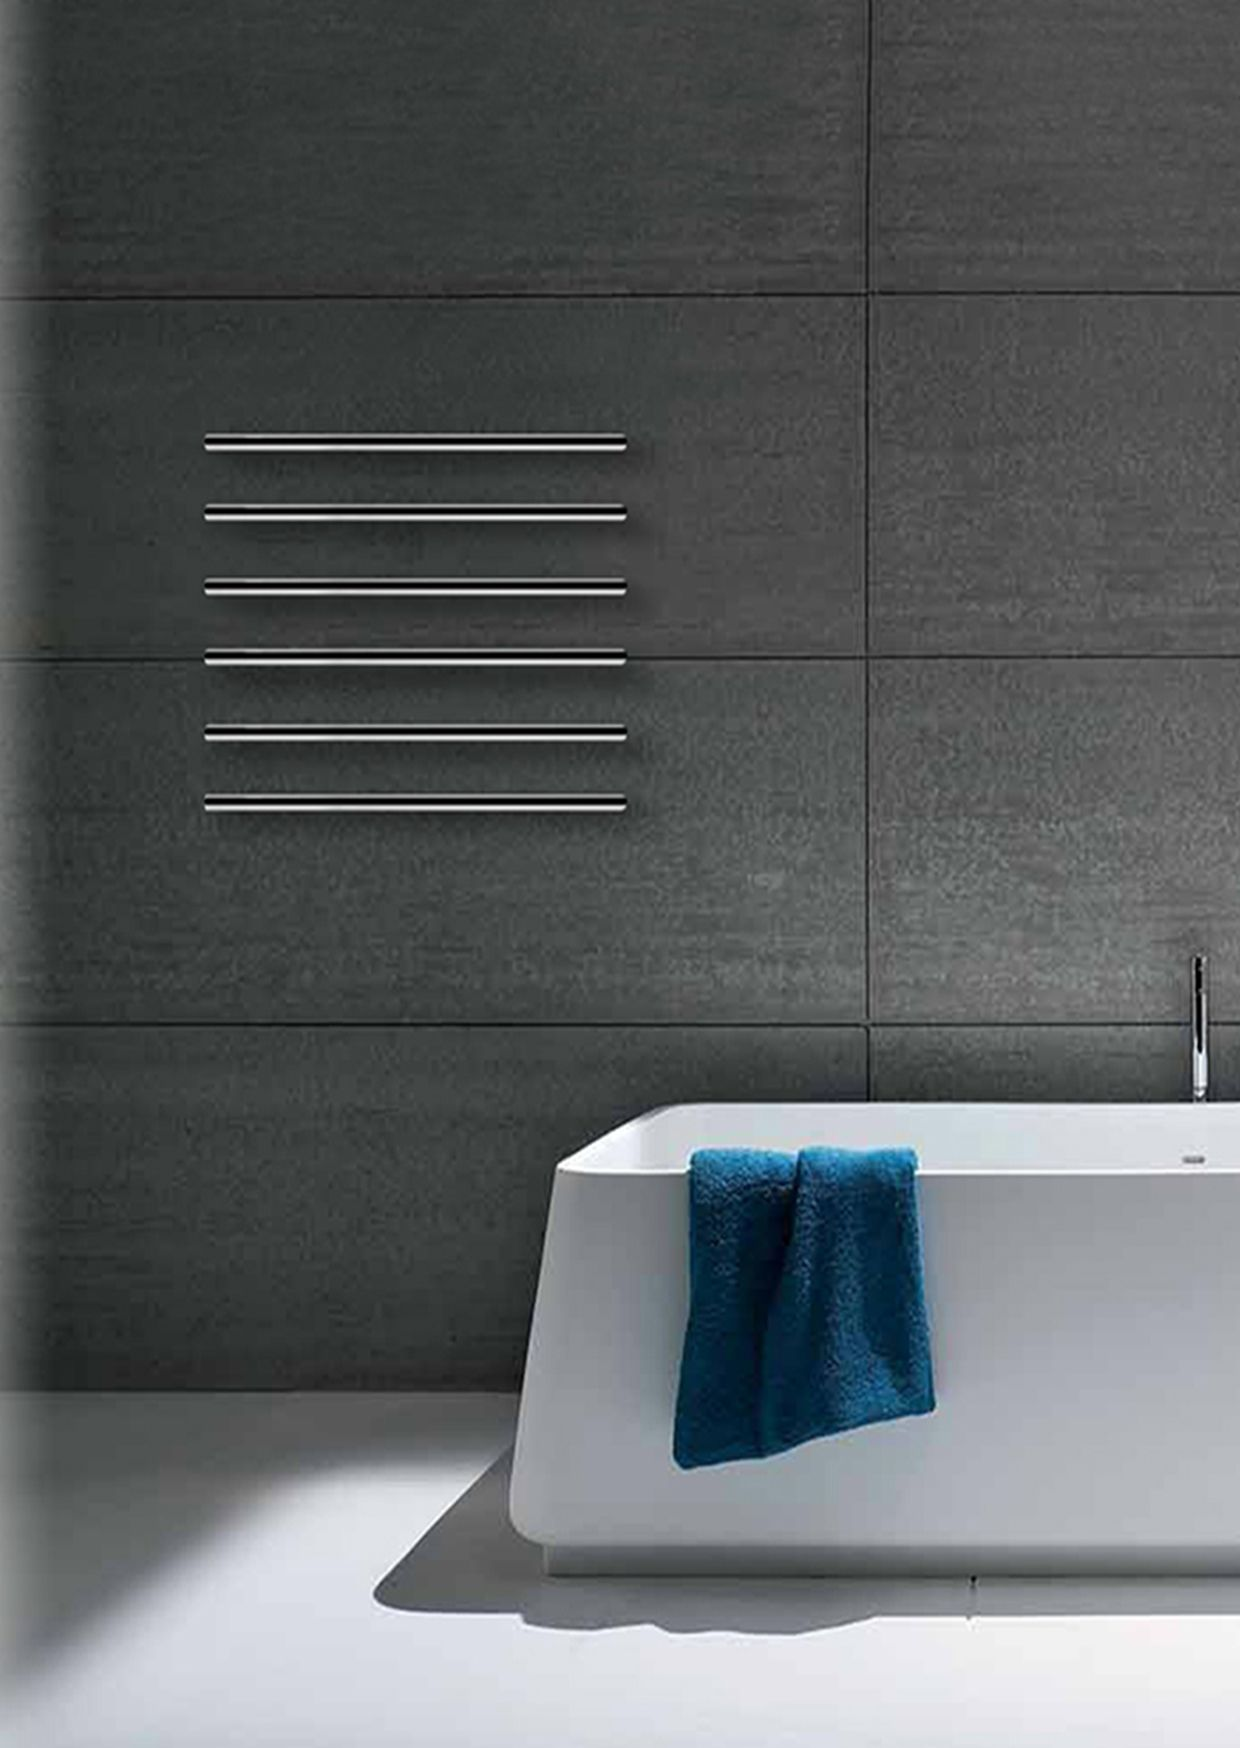 s che serviette design vd 1611 work minimalist bathroom bathroom radiators et bathroom bath. Black Bedroom Furniture Sets. Home Design Ideas